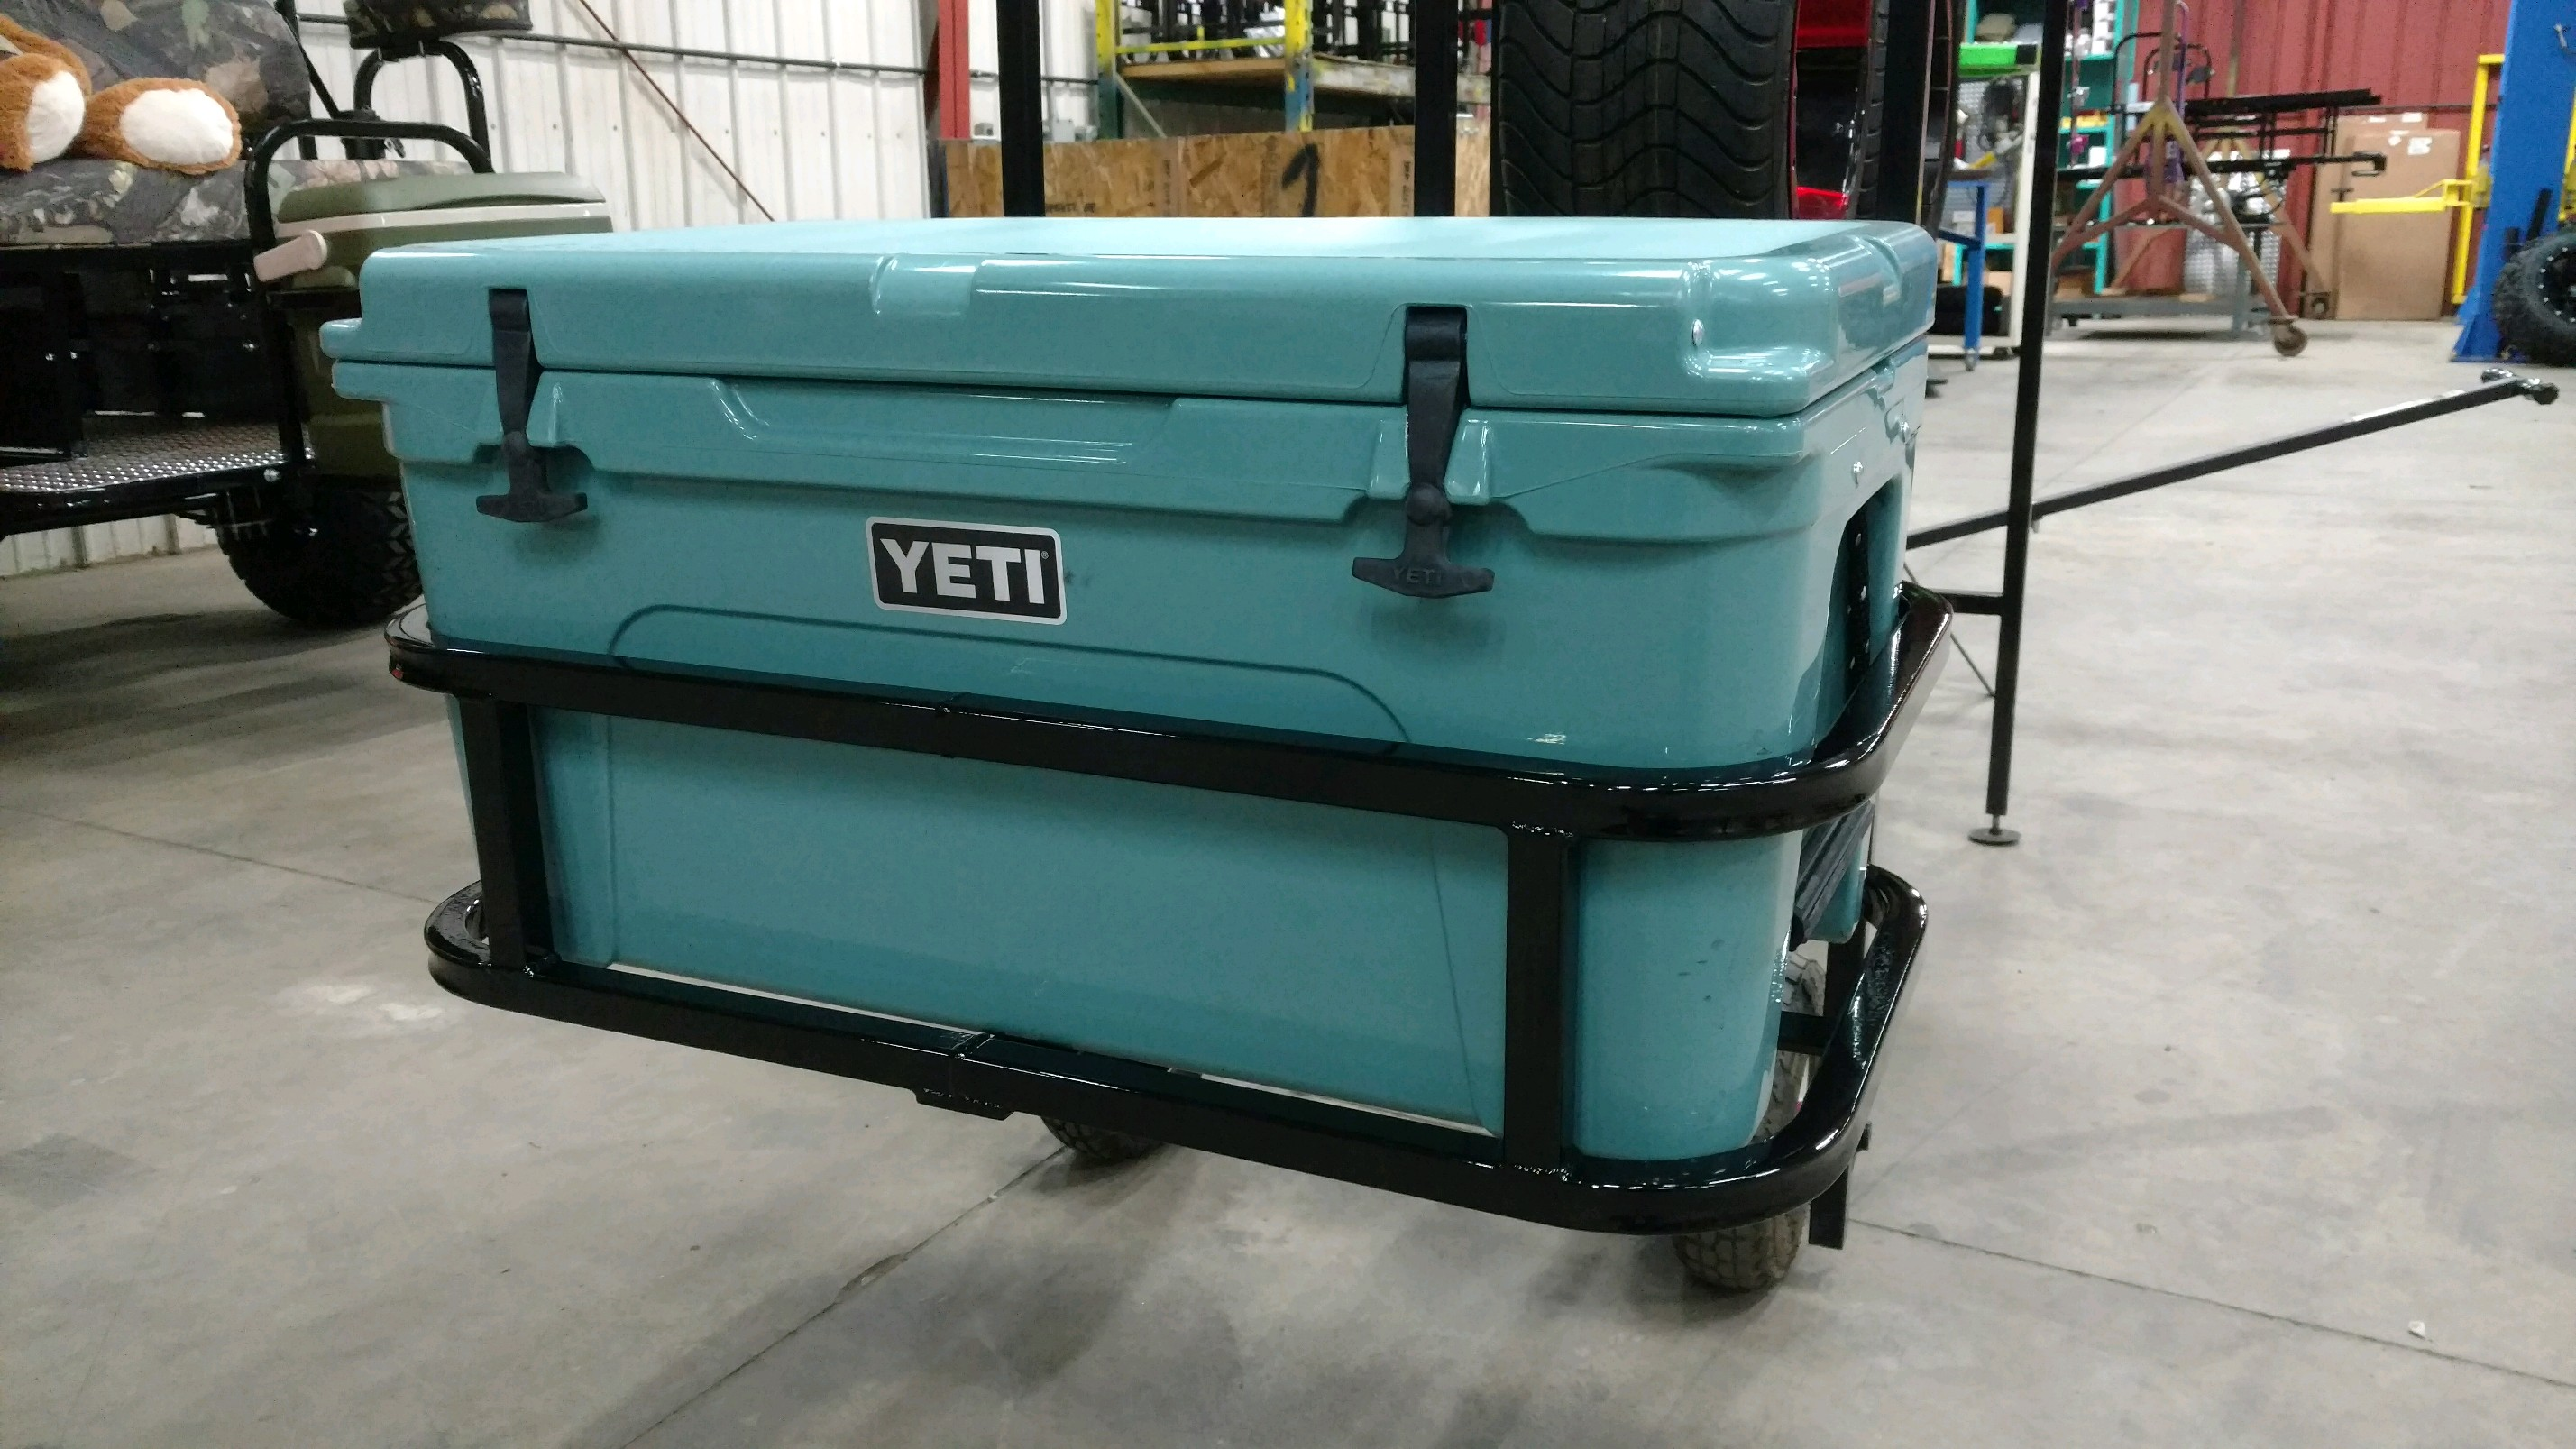 Yeti Tundra 65 Hitch Cooler Carrier